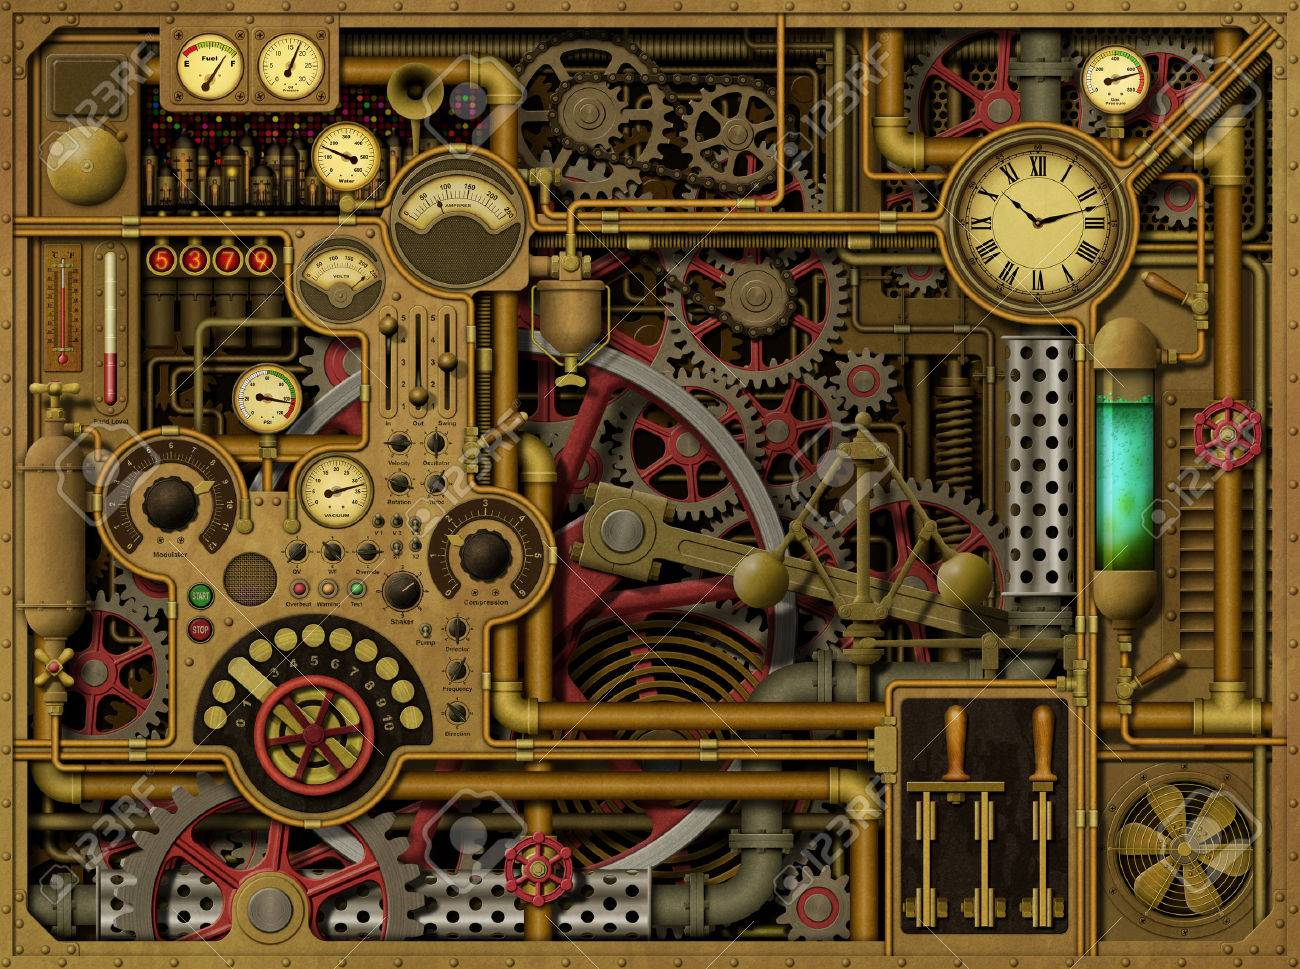 a steampunk background with clocks dials gears and cogs pipes